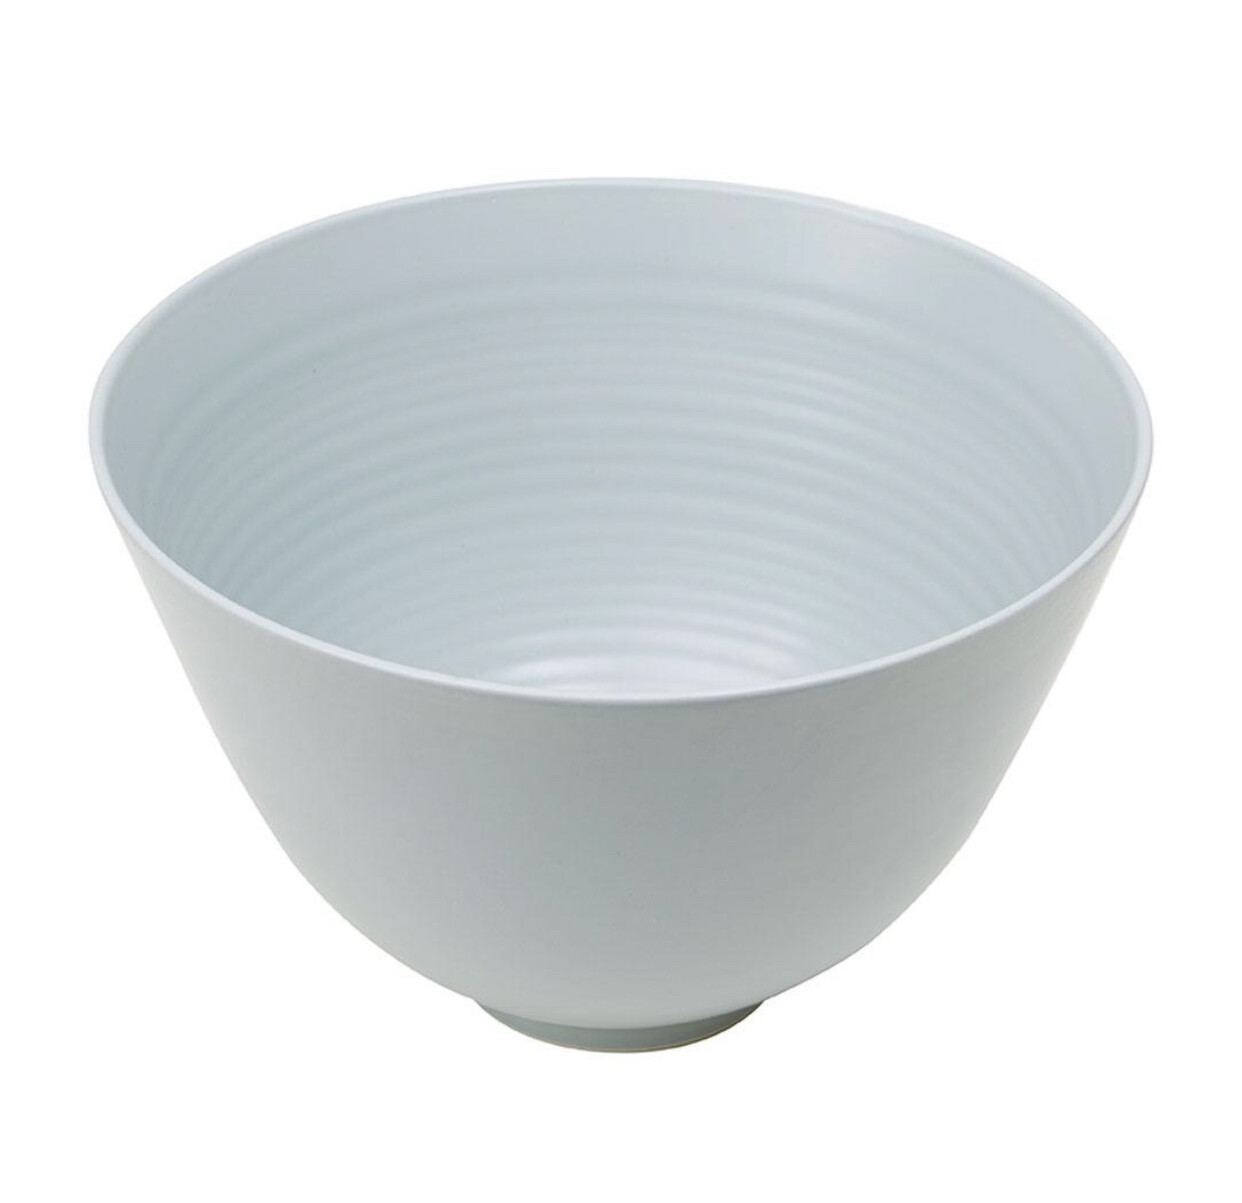 MINT HOME- Willow Large Salad Bowl - MID BLUE